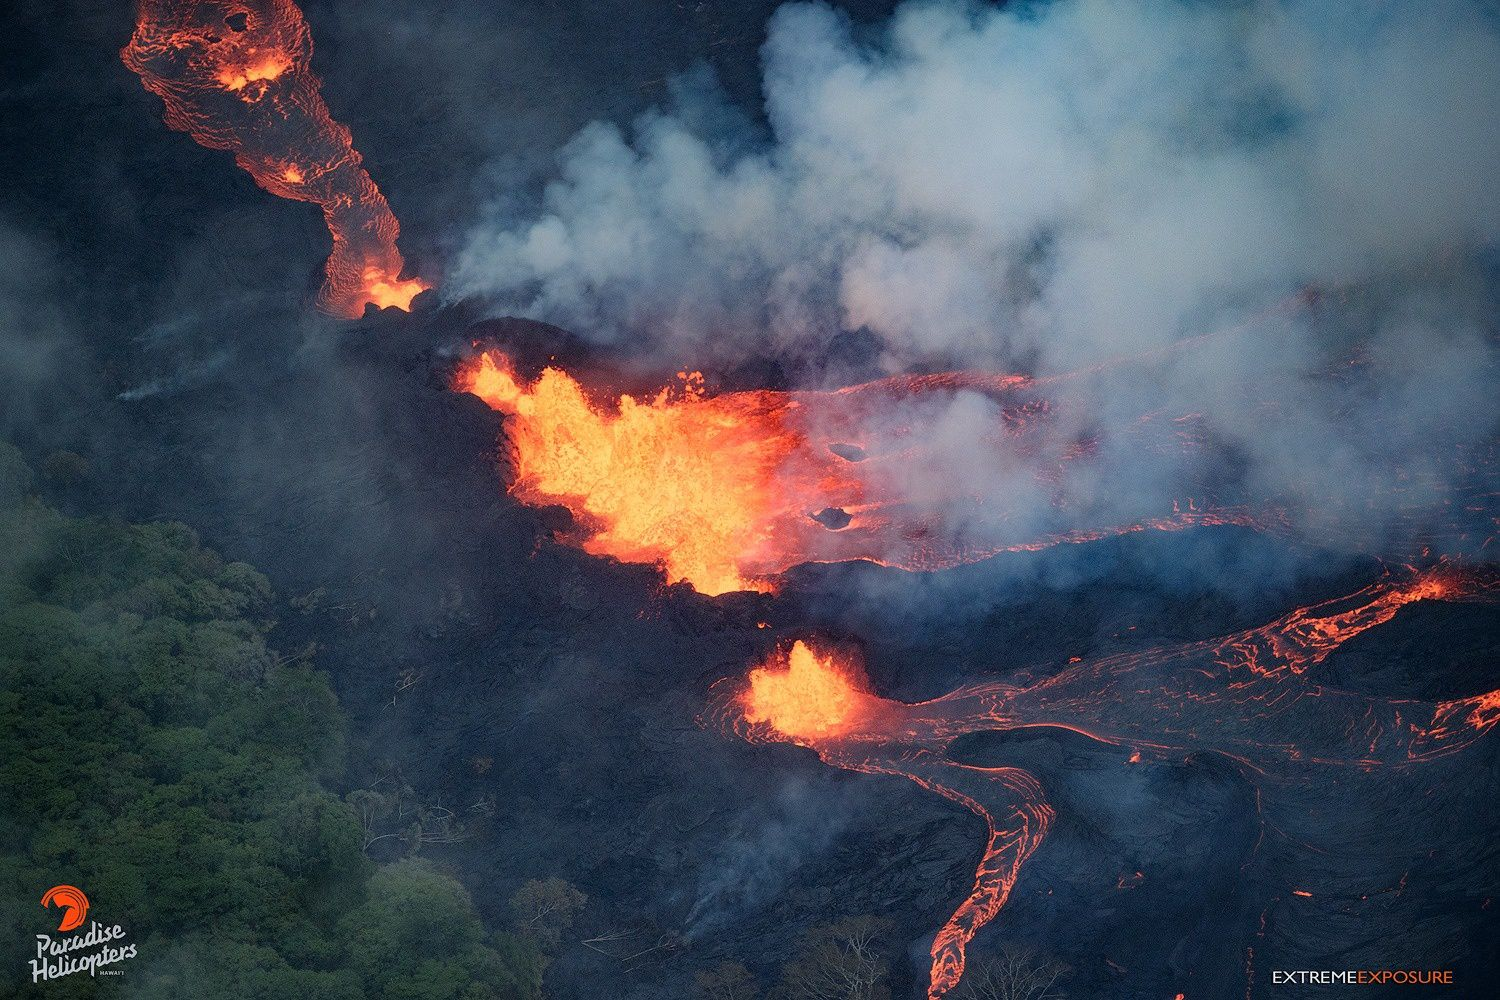 Kilauea East rift zone: 20.05.2018 / 5:45 - the fountaining continues at crack 20 and feeds lava flows - photo Bruce Omori / Paradise helicopters